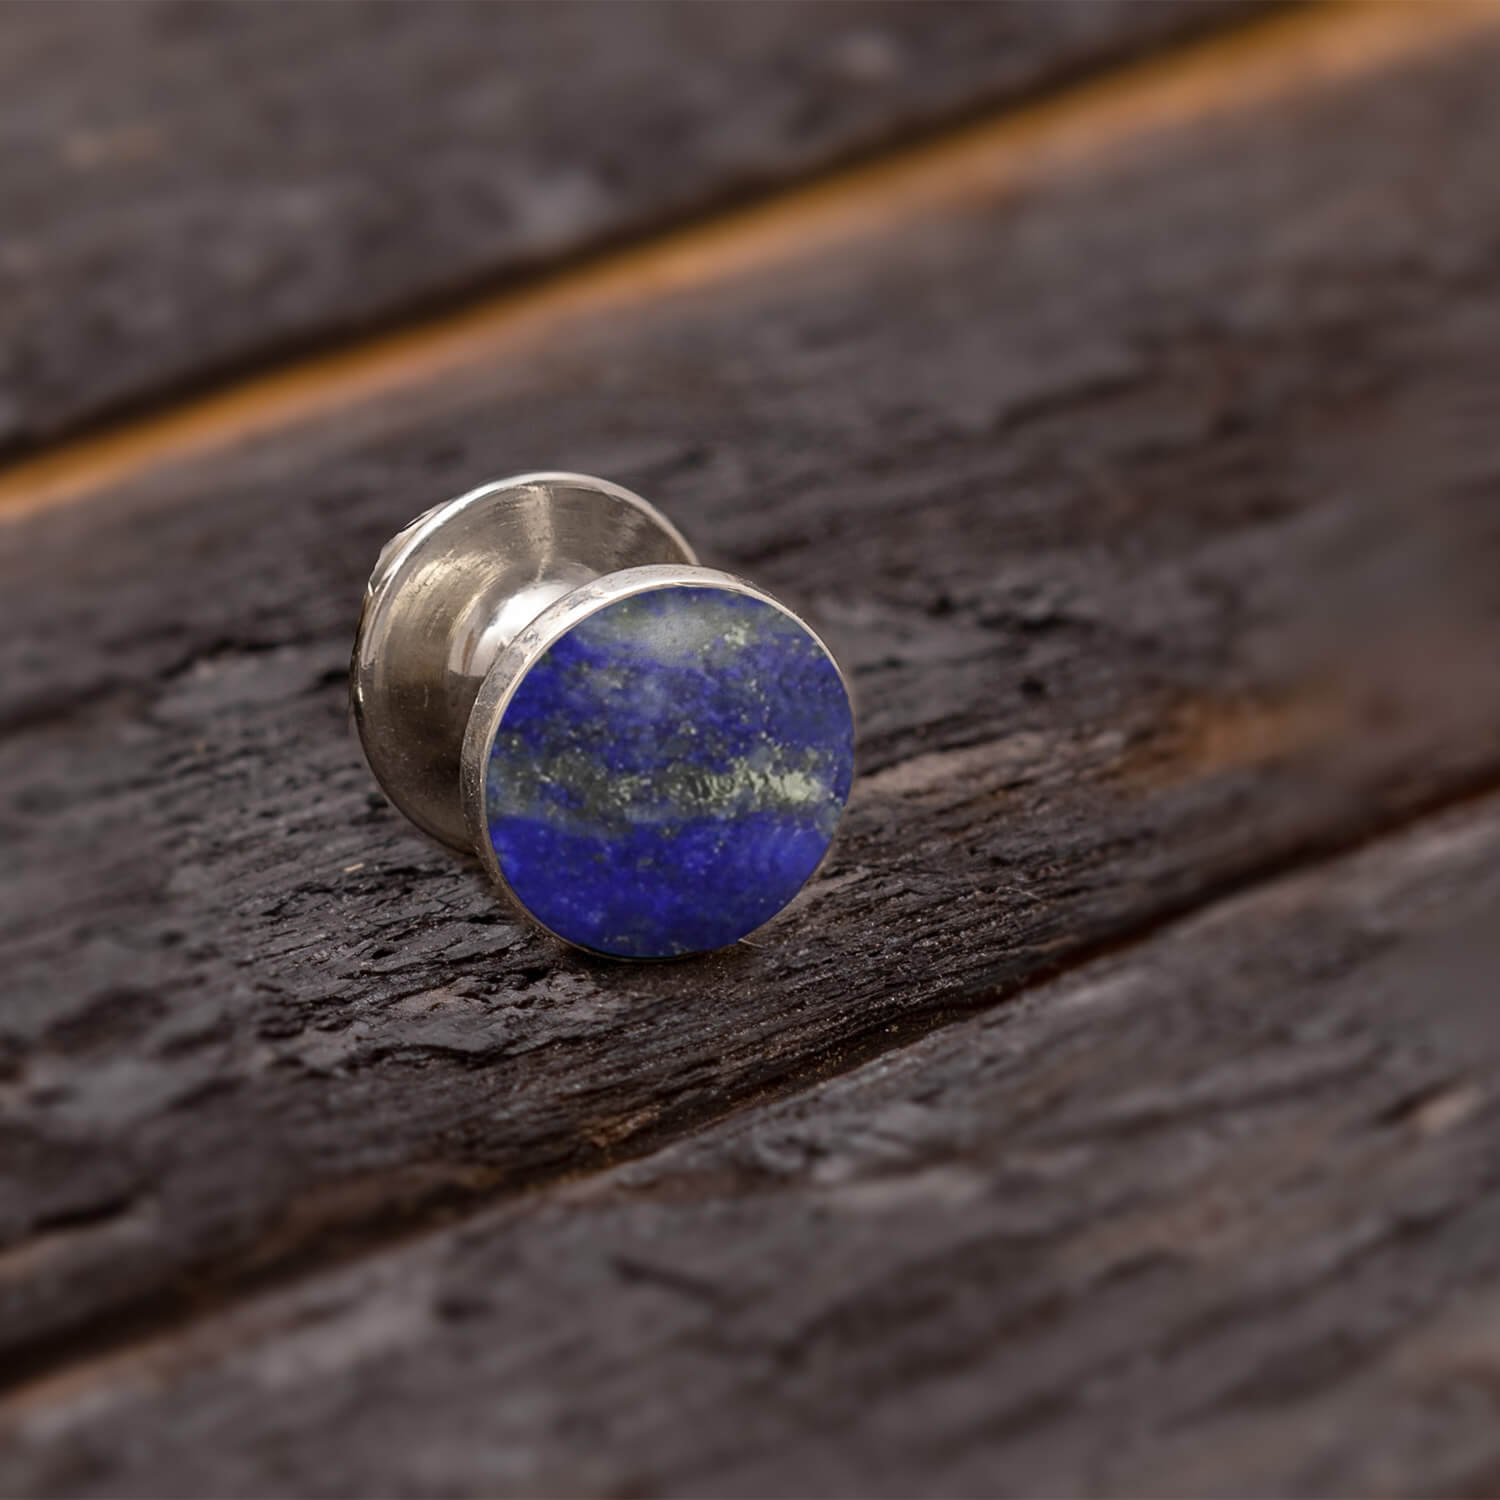 Round Lapis Lazuli Tie Tack in Sterling Silver-3976 - Jewelry by Johan